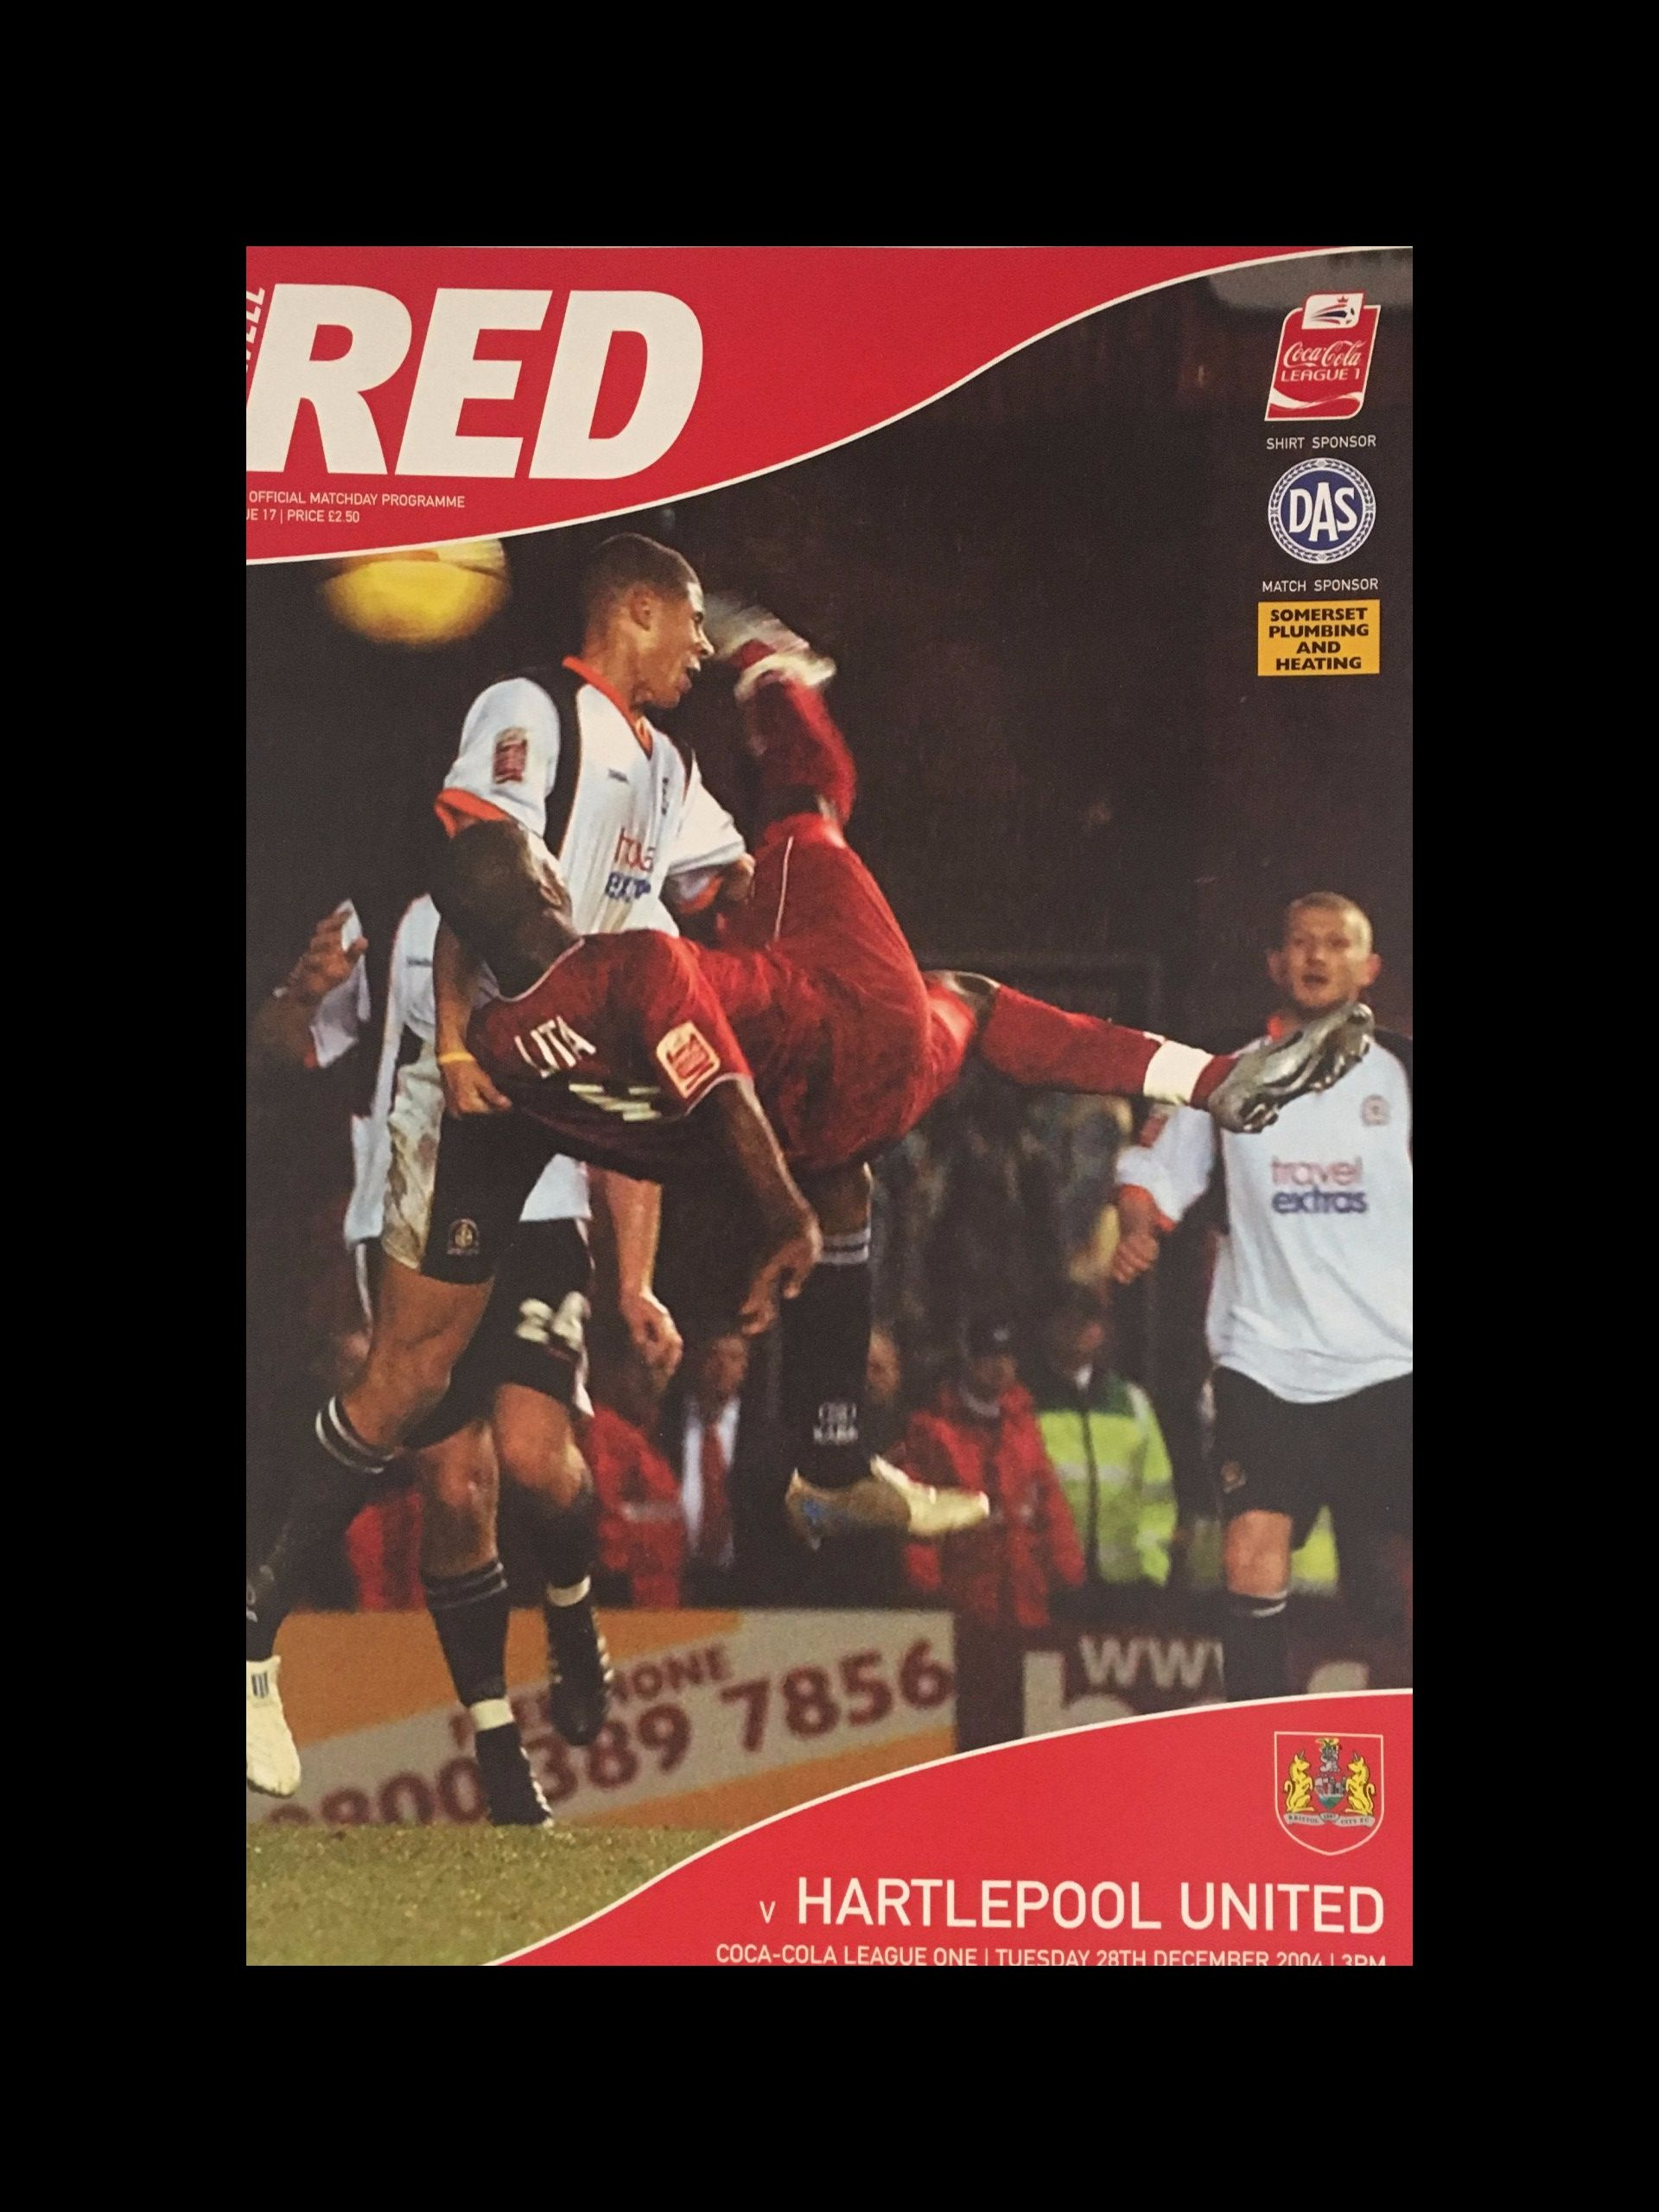 Bristol City v Hartlepool United 28-12-2004 Programme